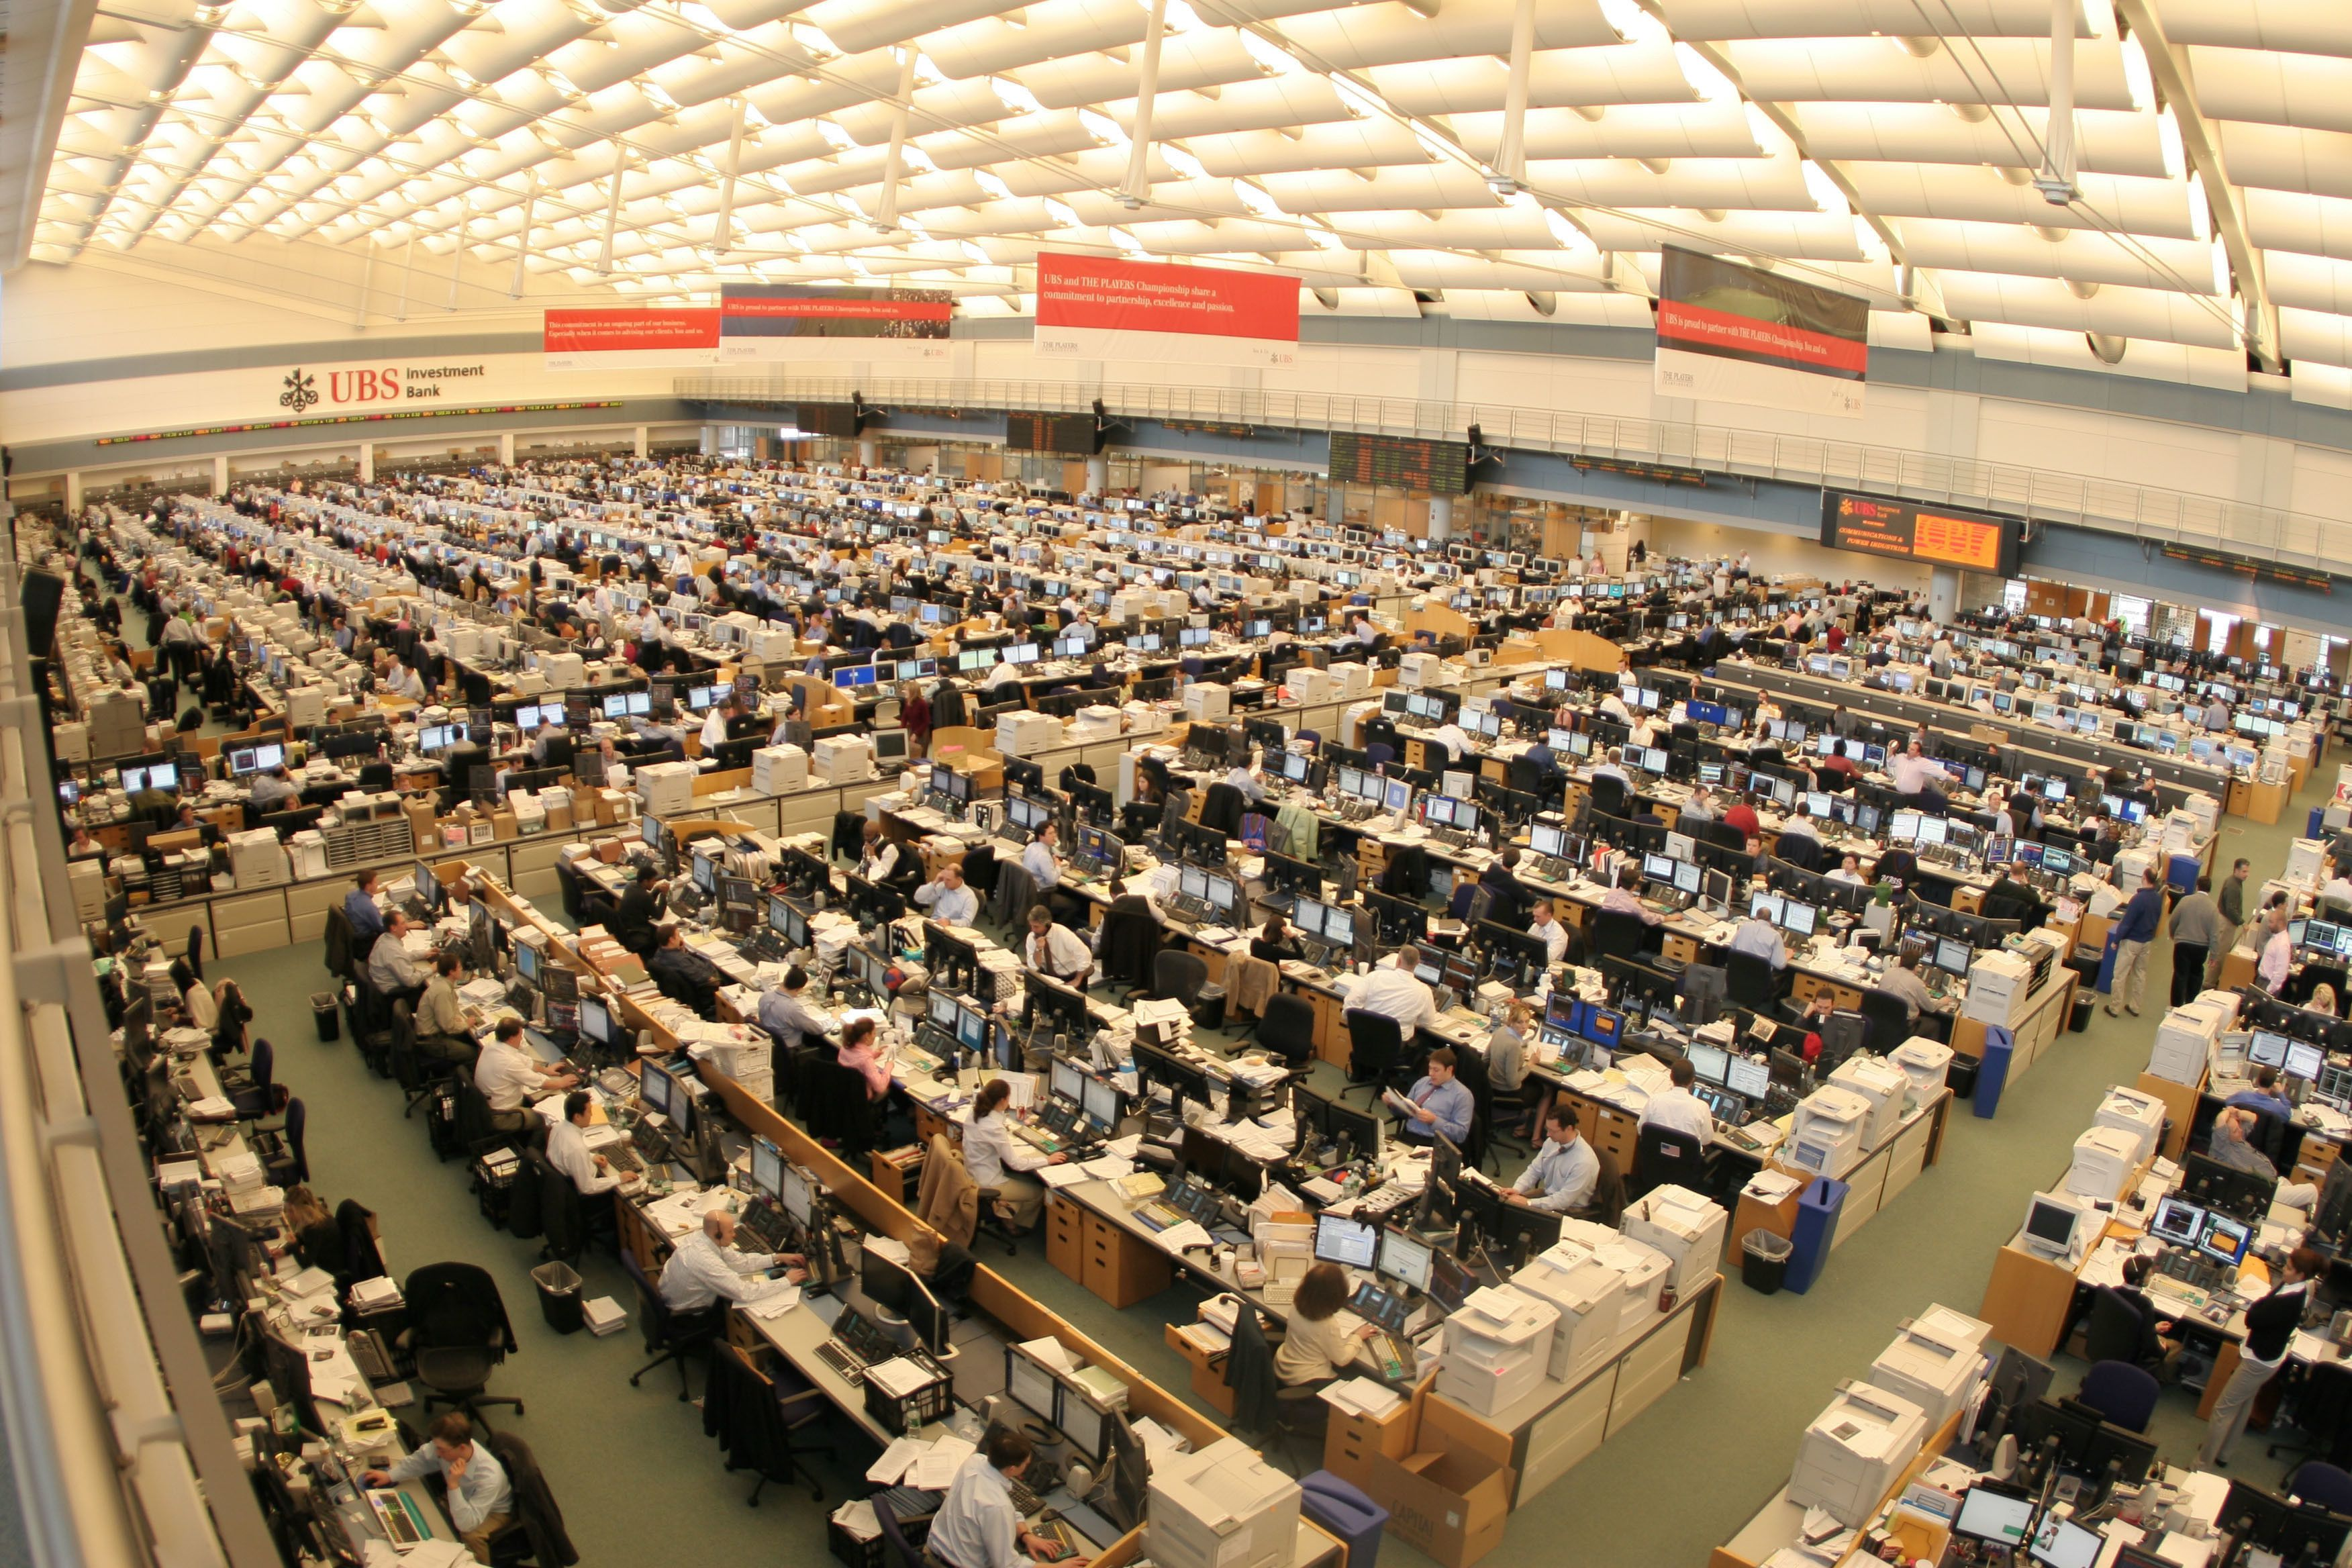 Ubs Trading Floor Then And Now Feels Free To Follow Us In 2020 Taking Over The World Investment Banking Flooring